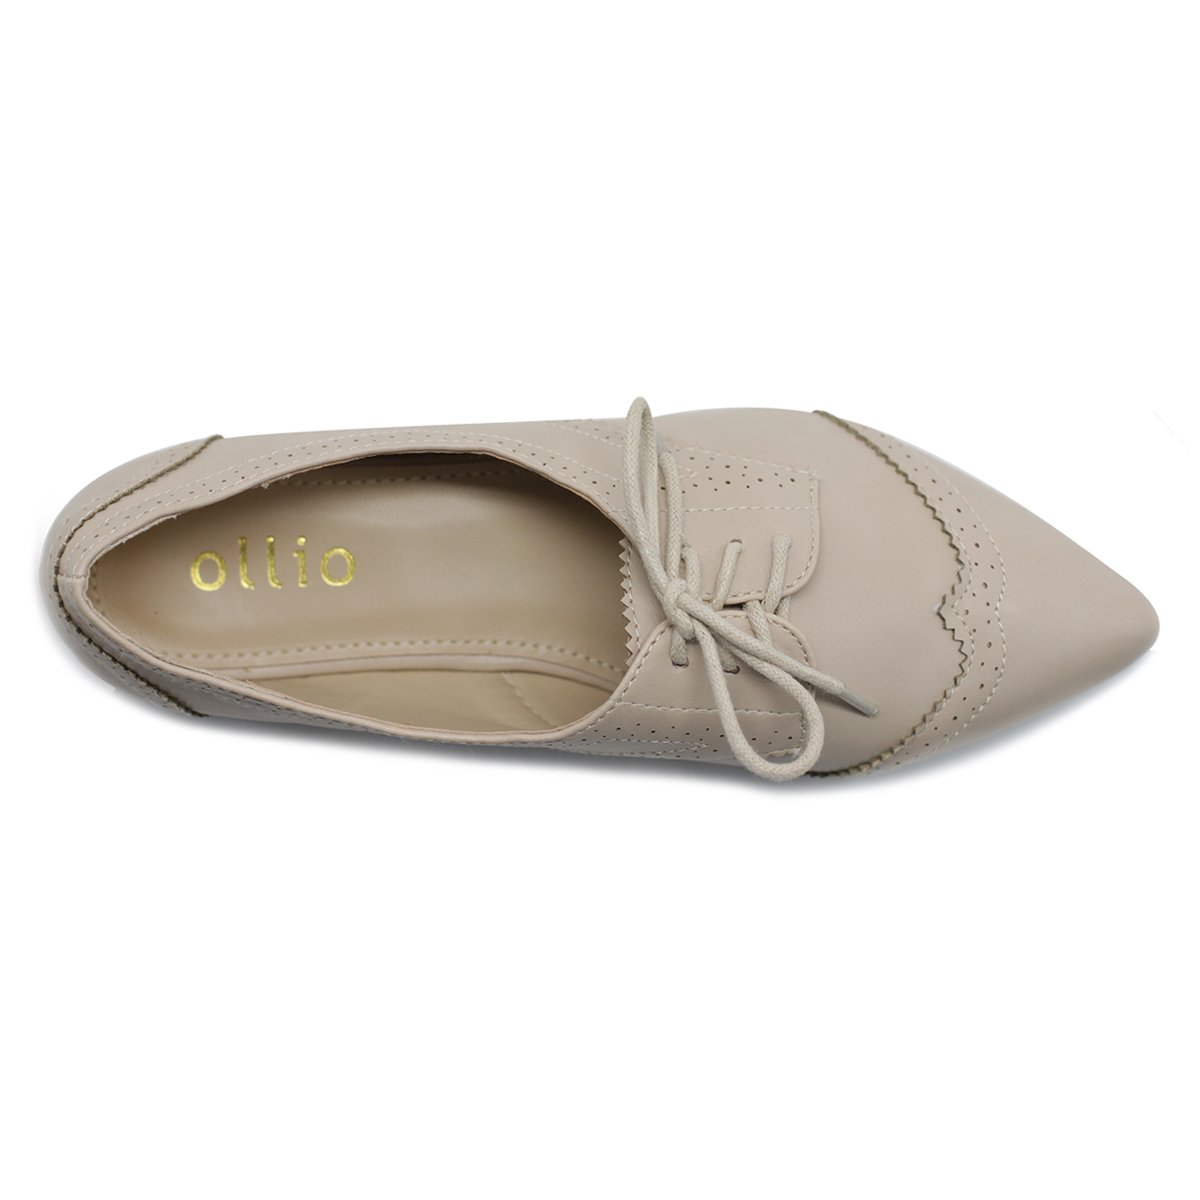 Ollio Women's Ballet Shoe Flat Enamel Pointed Toe Oxford M1818 (9 B(M) US, Beige) by Ollio (Image #6)